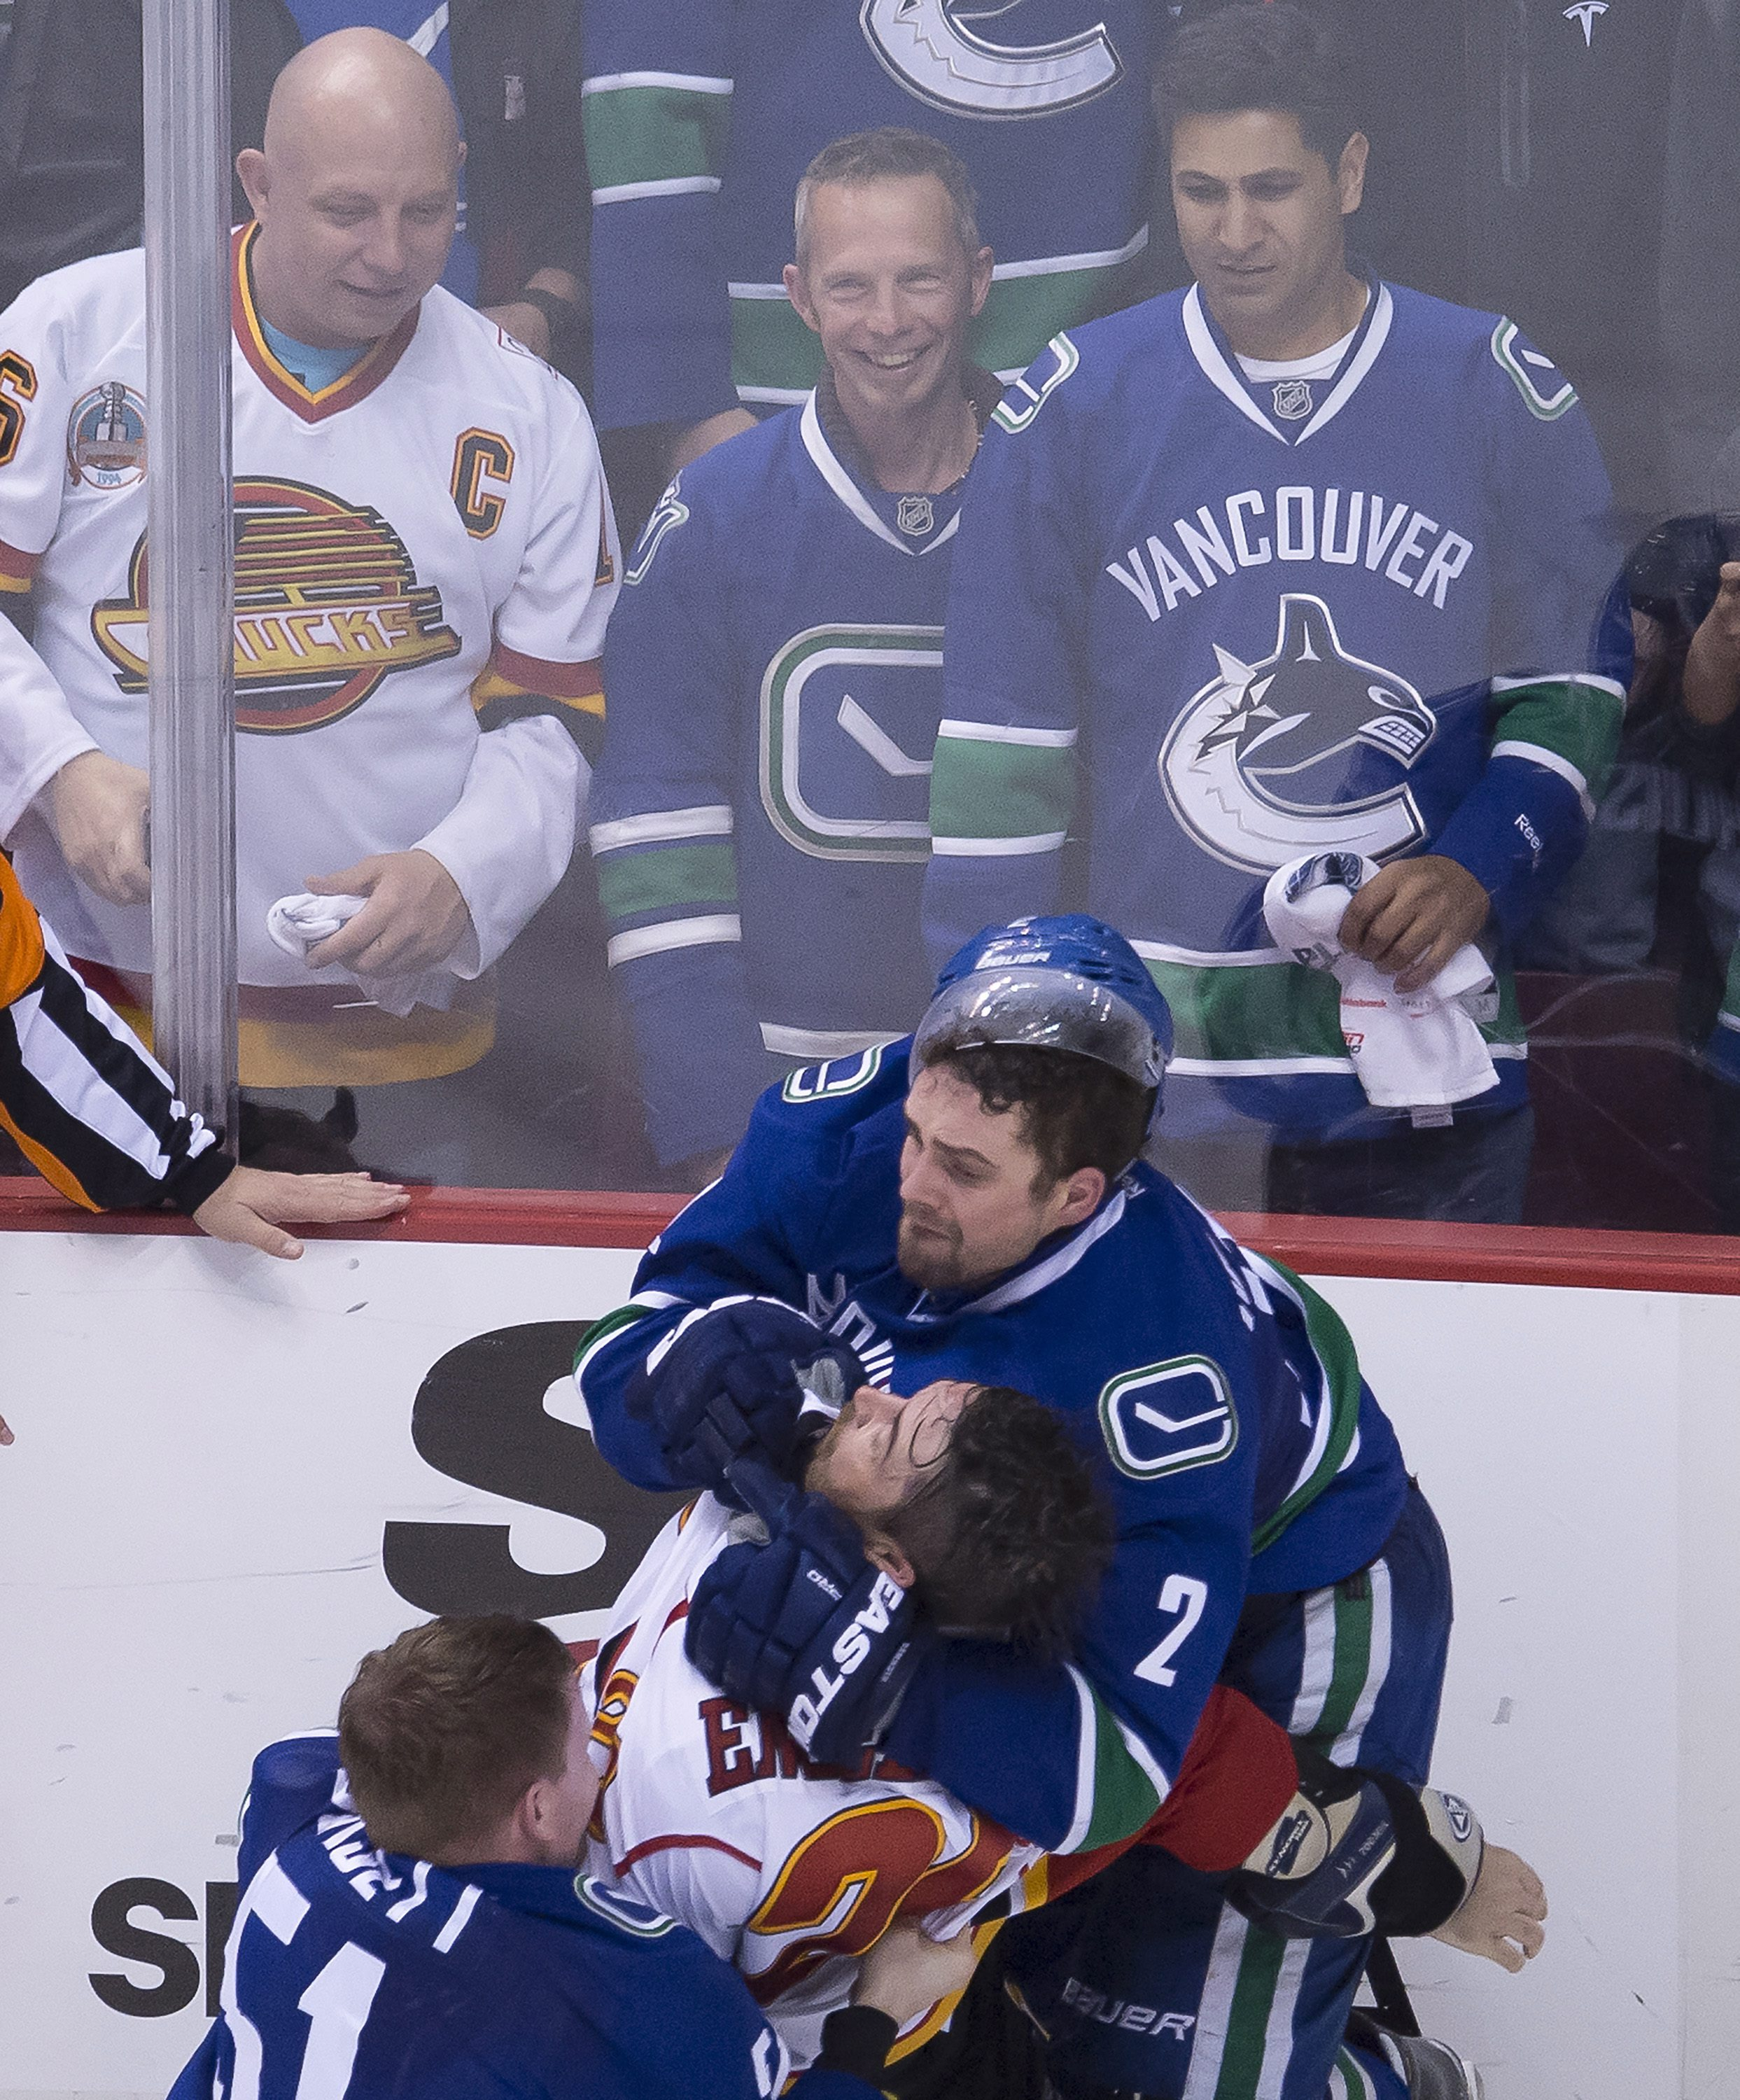 Vancouver Canucks' Derek Dorsett (51) and Dan Hamhuis (2) fight with Calgary Flames defenseman Deryk Engelland (29) during the third period of Game 2 of an NHL hockey first-round playoff series, Friday, April 17, 2015, in Vancouver, British Columbia. (Jon